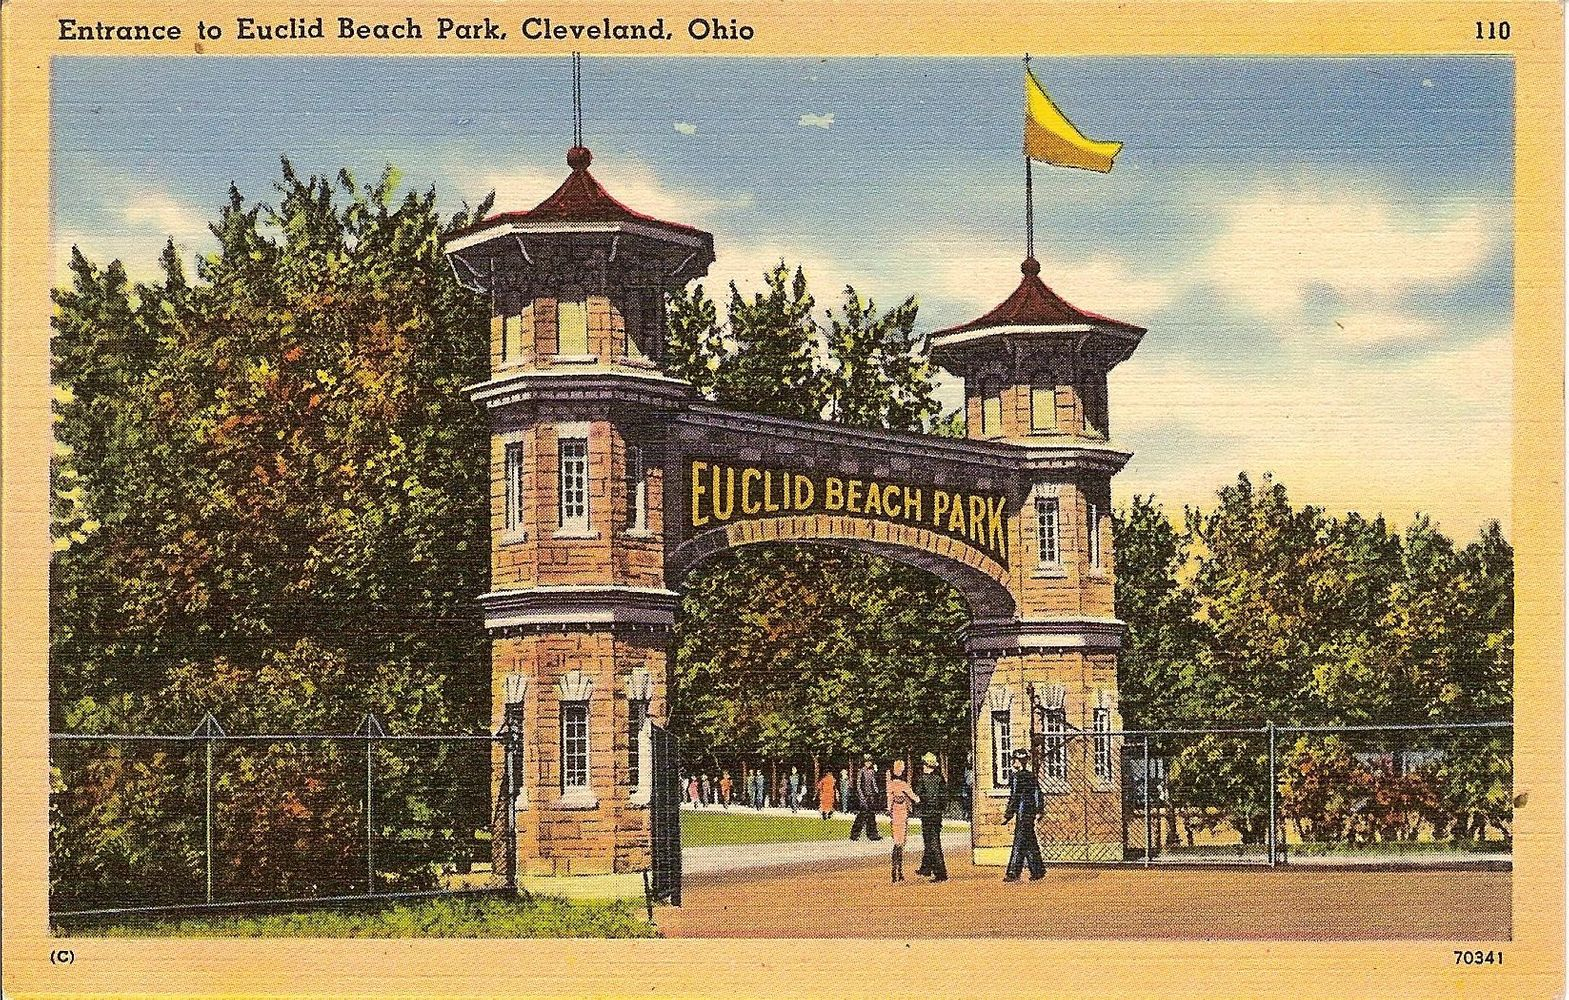 Image from an old Euclid Beach Park postcard.